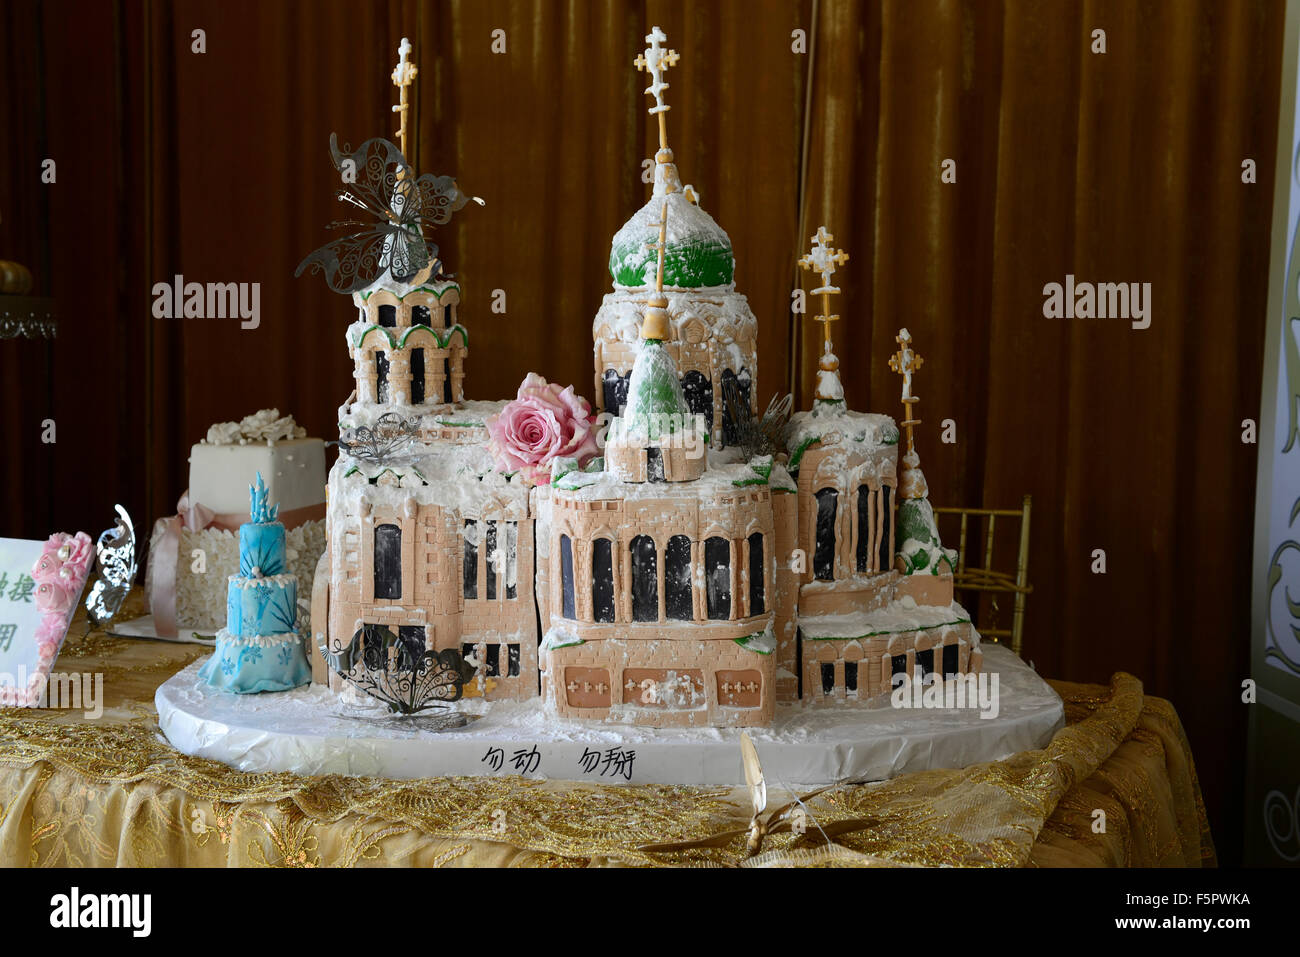 Elaborate wedding cake orthodox religious building church cathedral edible food celebration celebrate Harbin China - Stock Image